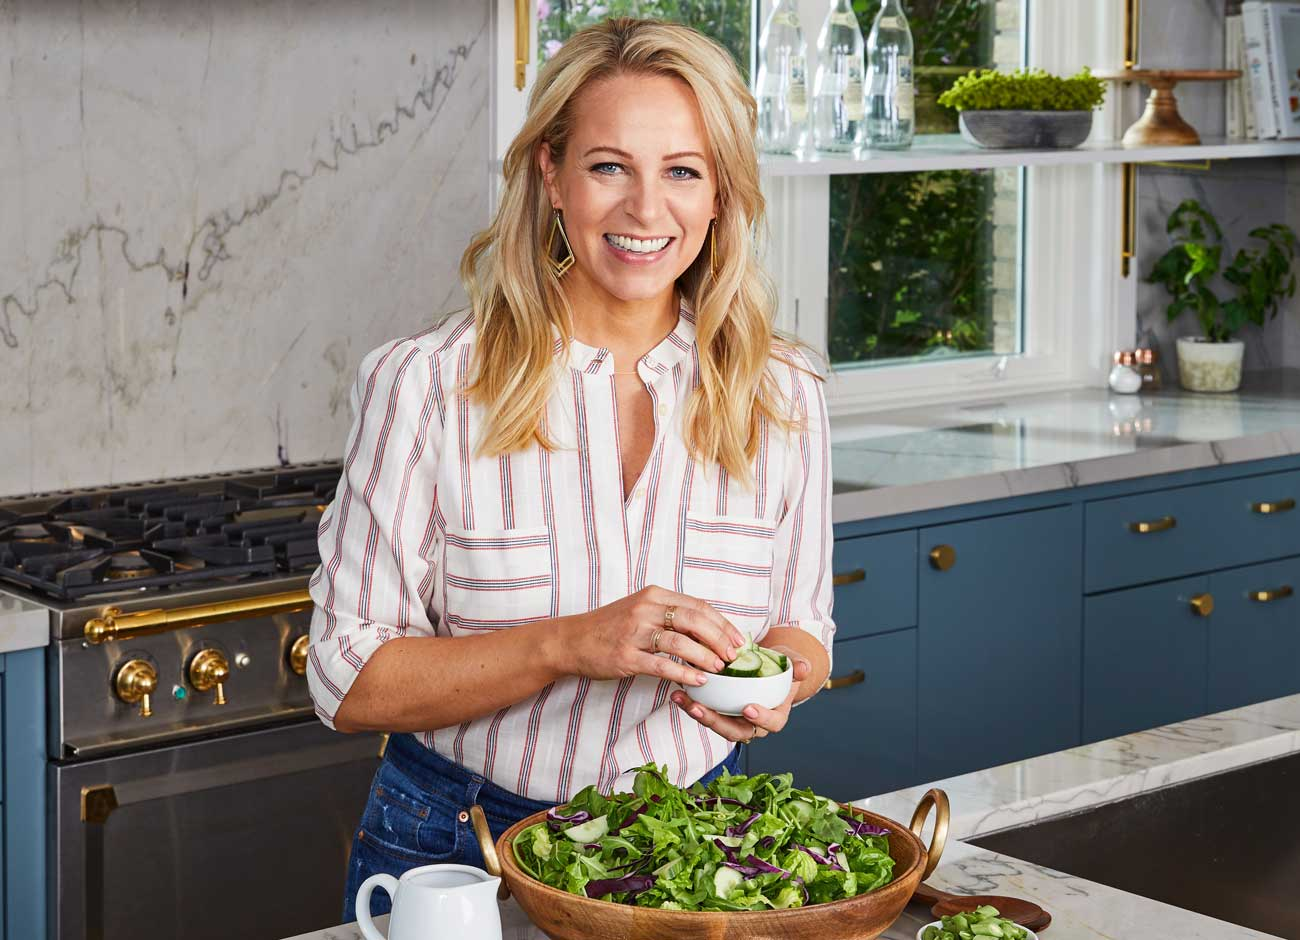 a blonde woman makes a salad in a sunny kitchen